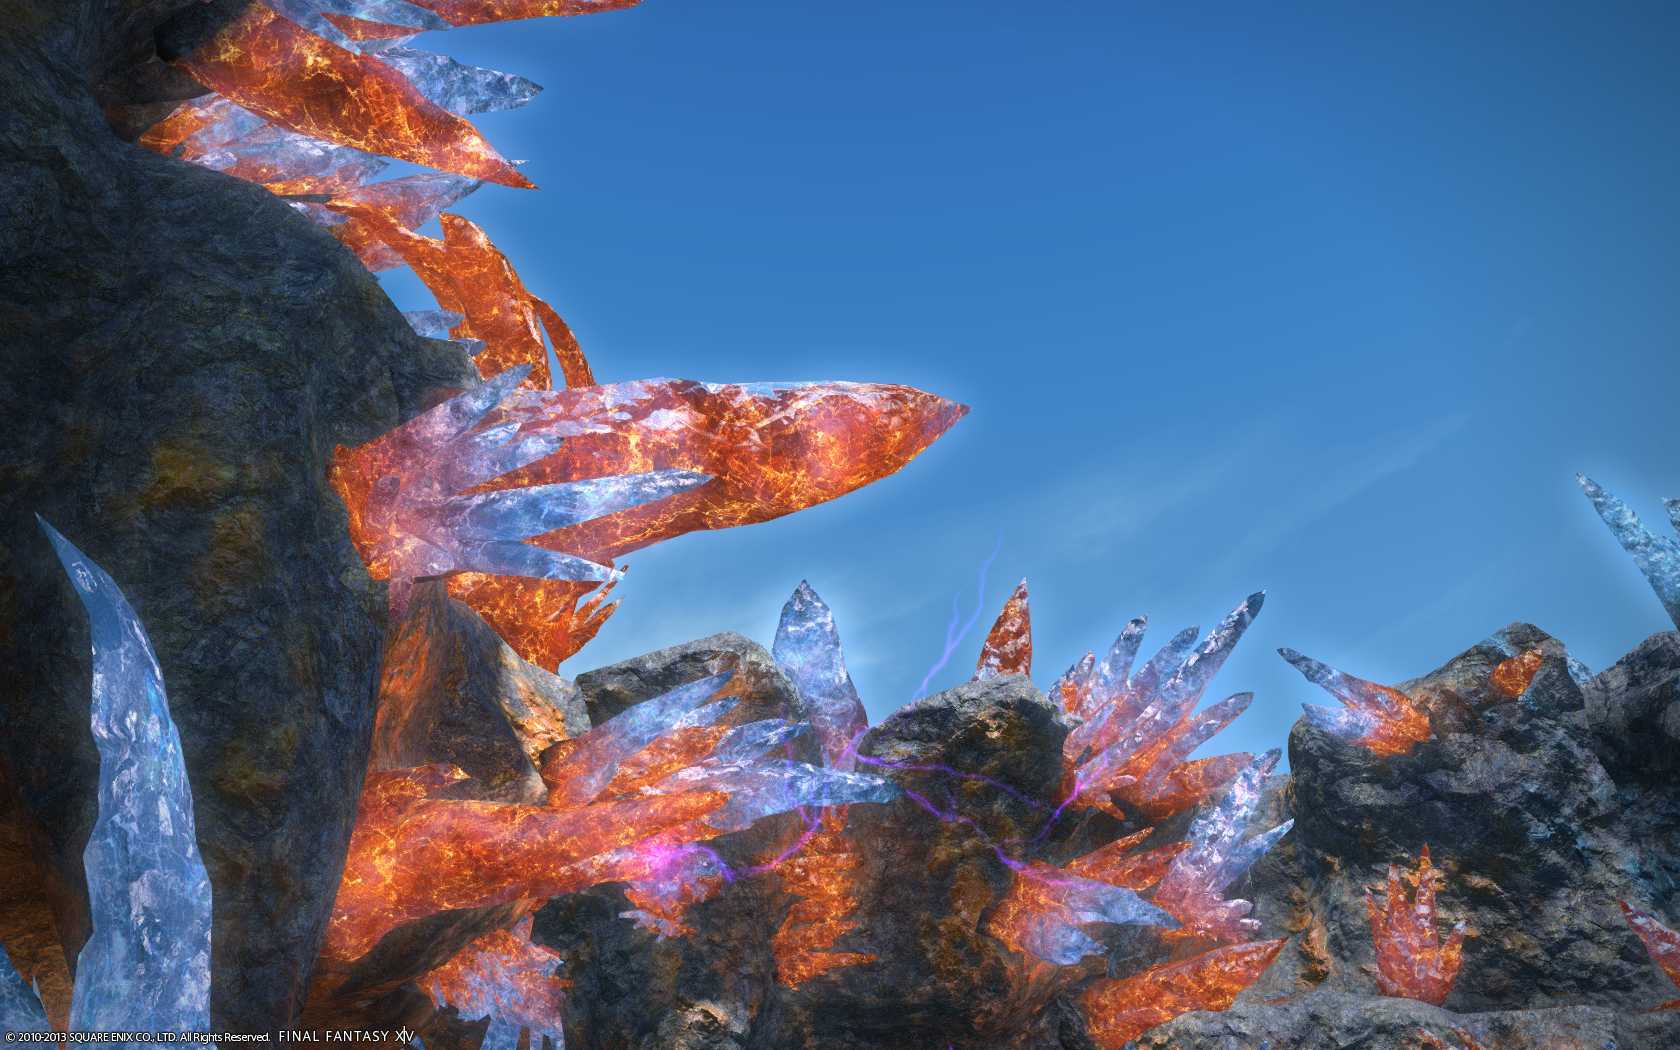 viena ffxiv scaling them hurts down bucket size file need bigger 1920 stupid reborn screenshot thread realm fantasy 1017 somewhat less with release final